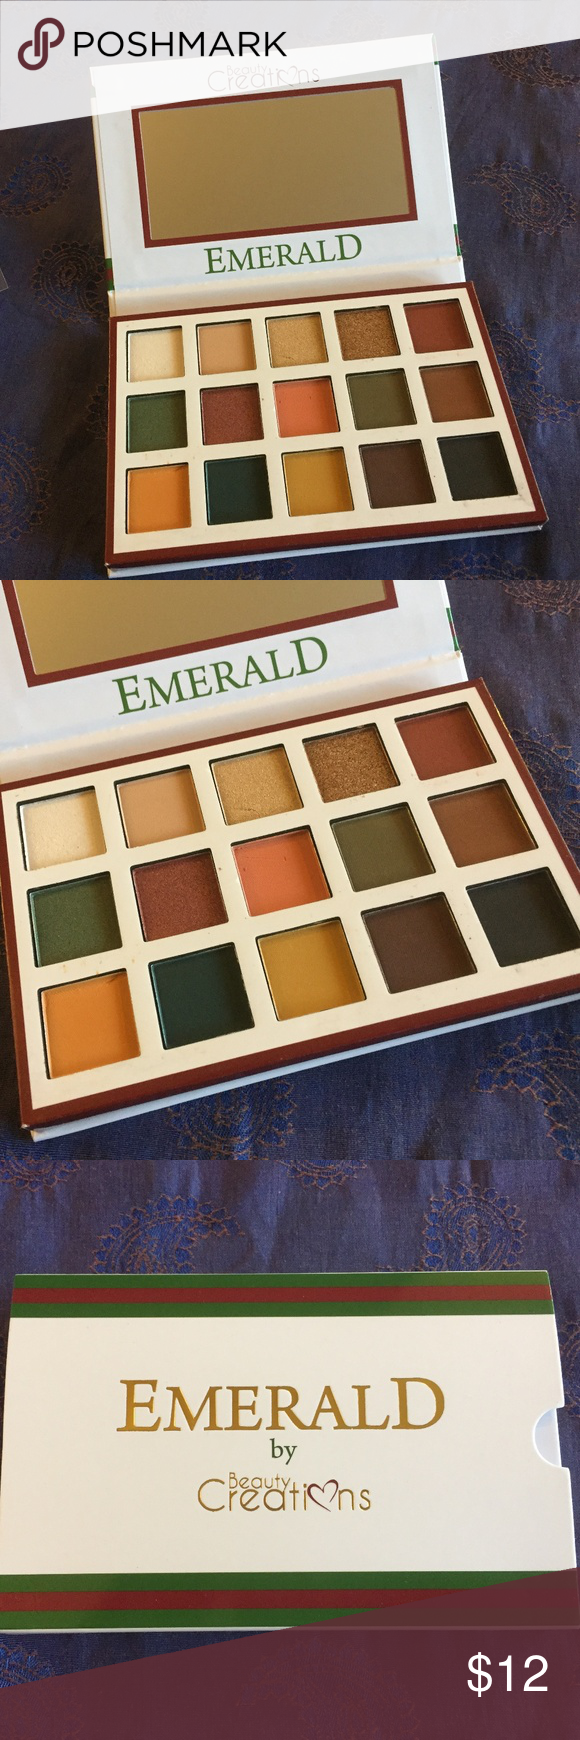 Emerald by Beauty Creations Eye Shadow Palette 15 Gorgeous fall and winter colors, from neutral to deep to bold and sparkly – greens, browns, peach, m…